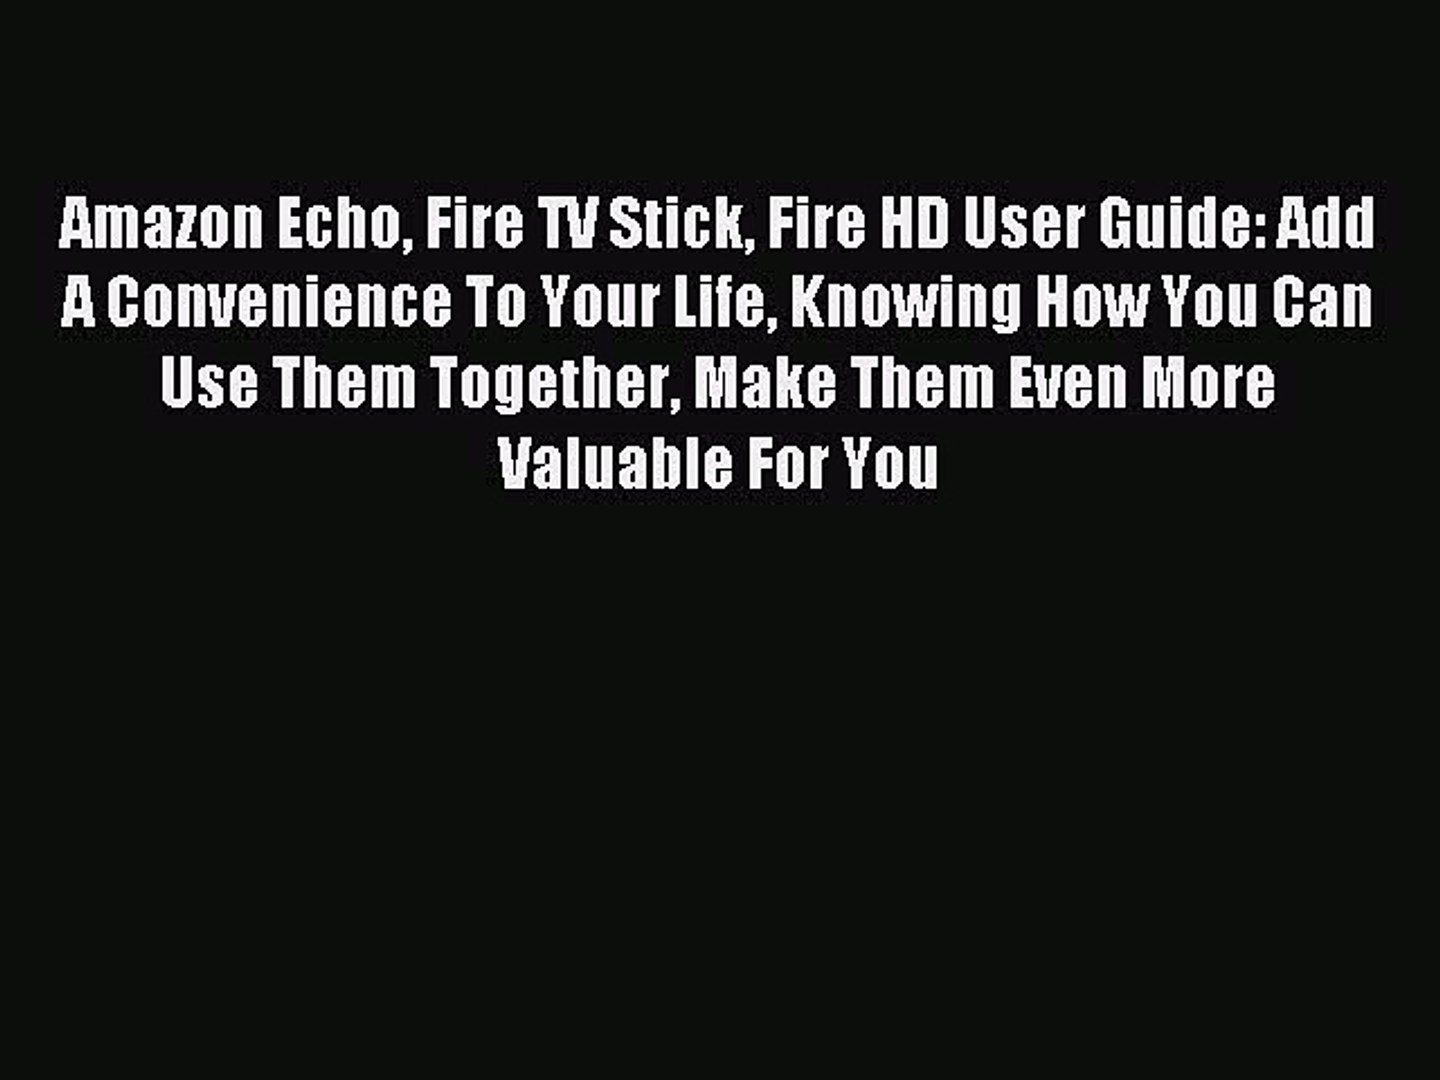 Download Amazon Echo Fire TV Stick Fire HD User Guide: Add A Convenience To Your Life Knowing